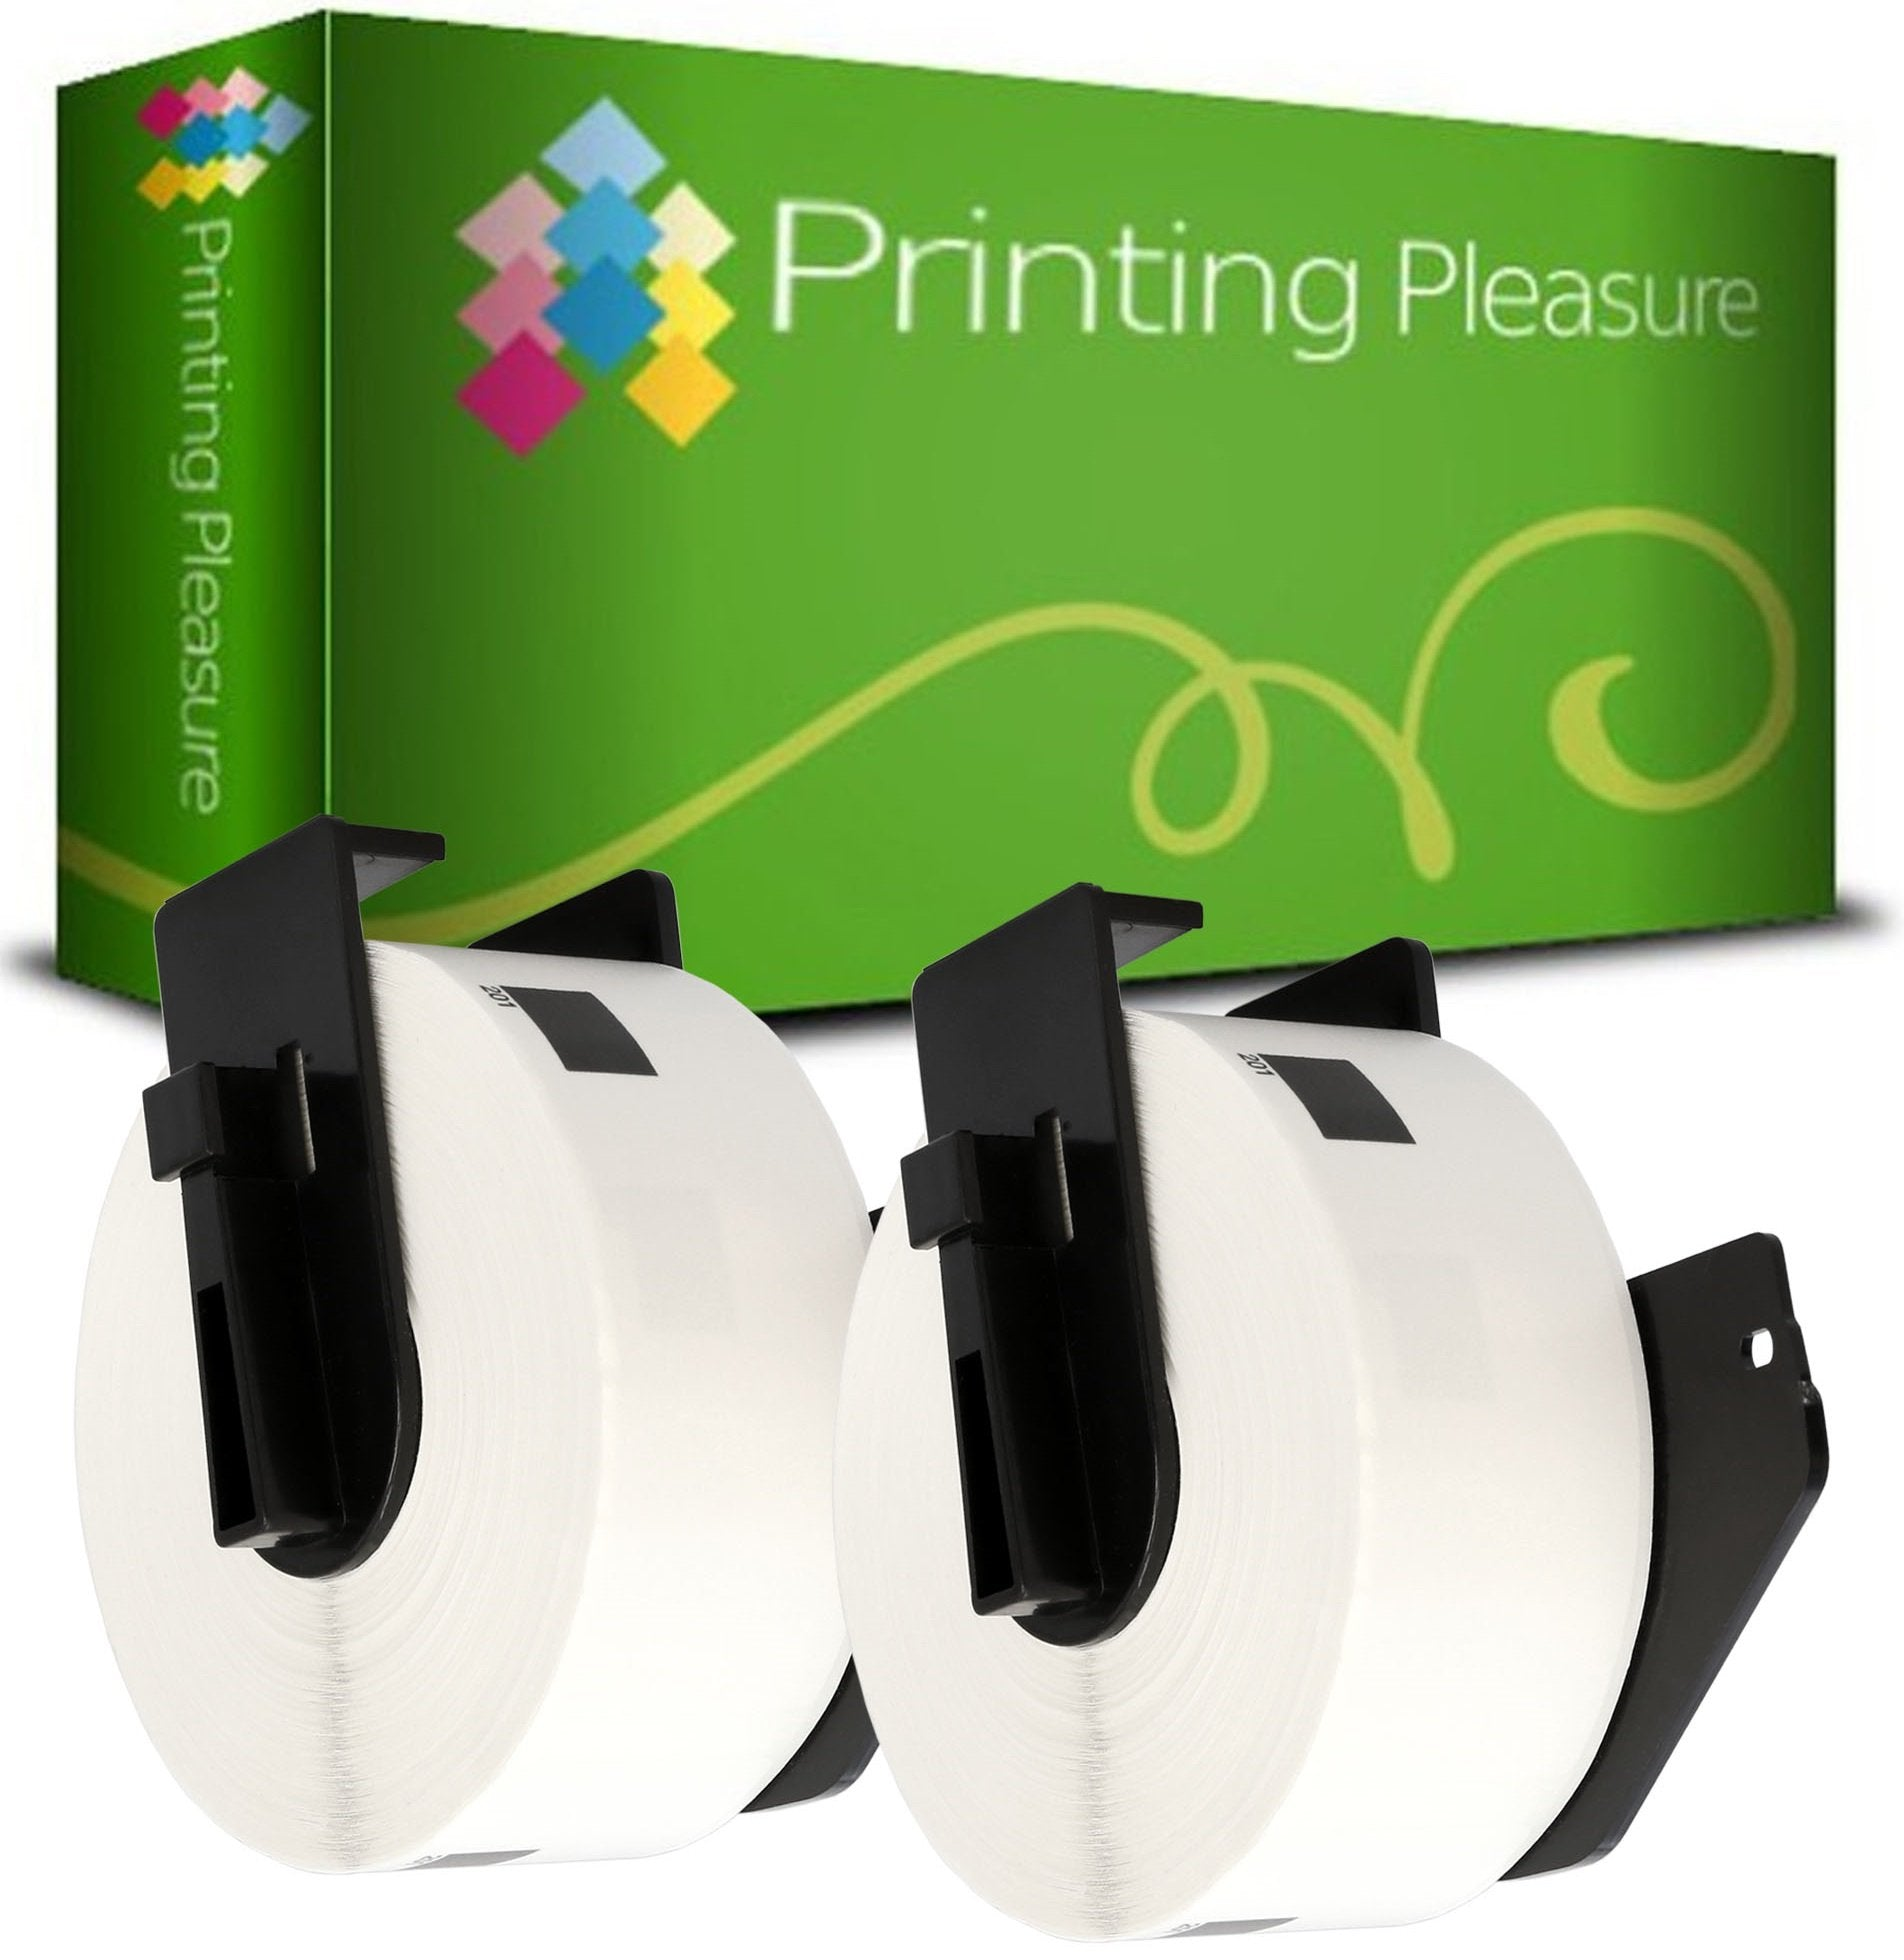 DK-11201 29mm x 90mm White Standard Address Labels compatible with Brother P-Touch - Printing Pleasure